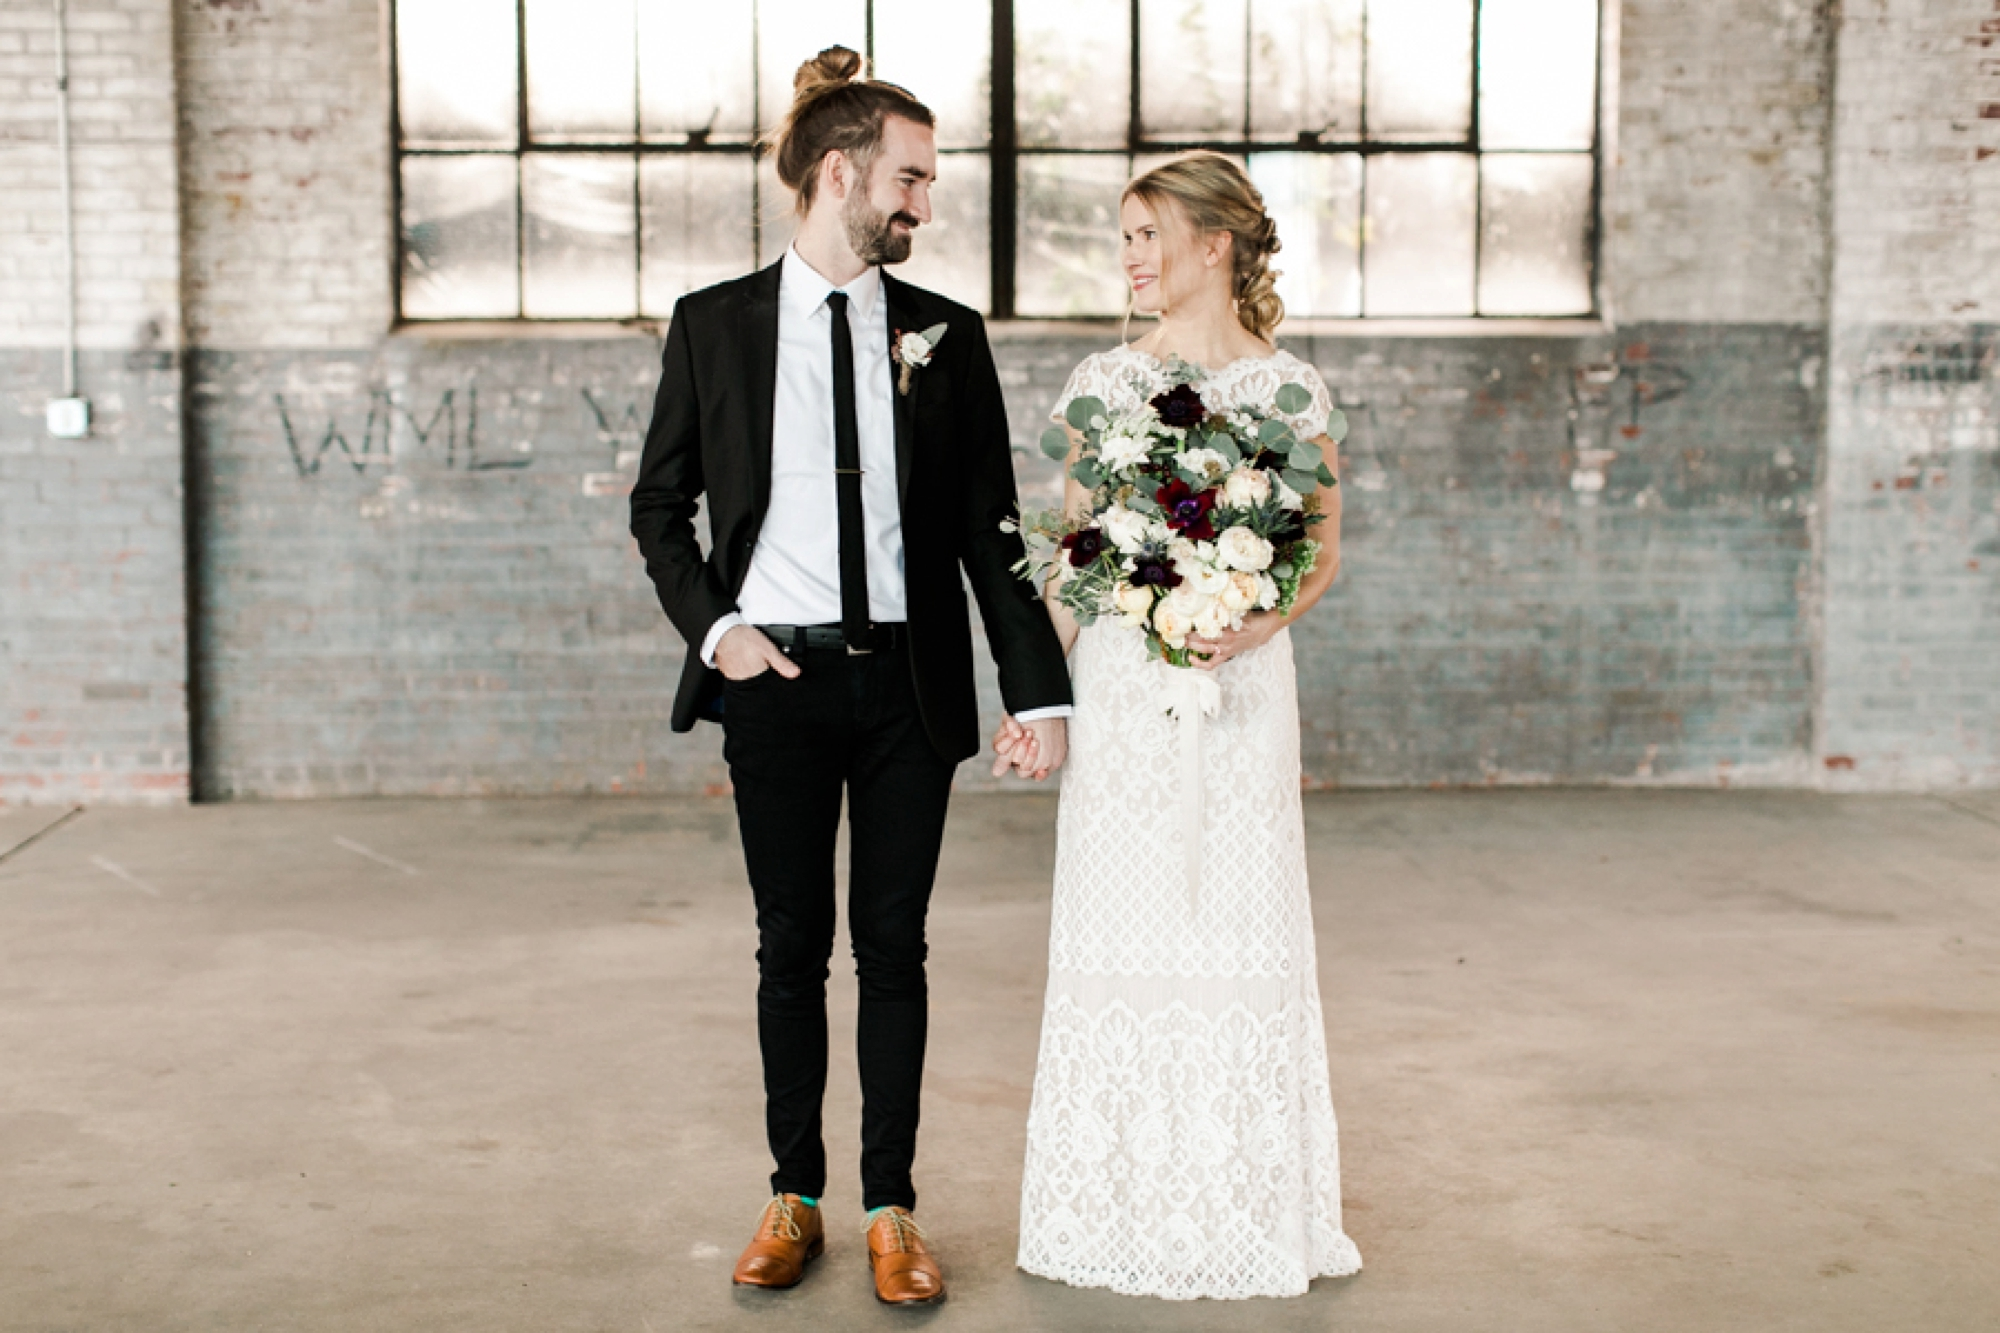 Natalie Broach Photography| The Glass Factory Wedding | Jacksonville Florida Wedding Photographer | North Florida Wedding Photographer | Fine Art Wedding Photographer | The Glass Factory Wedding Photographer